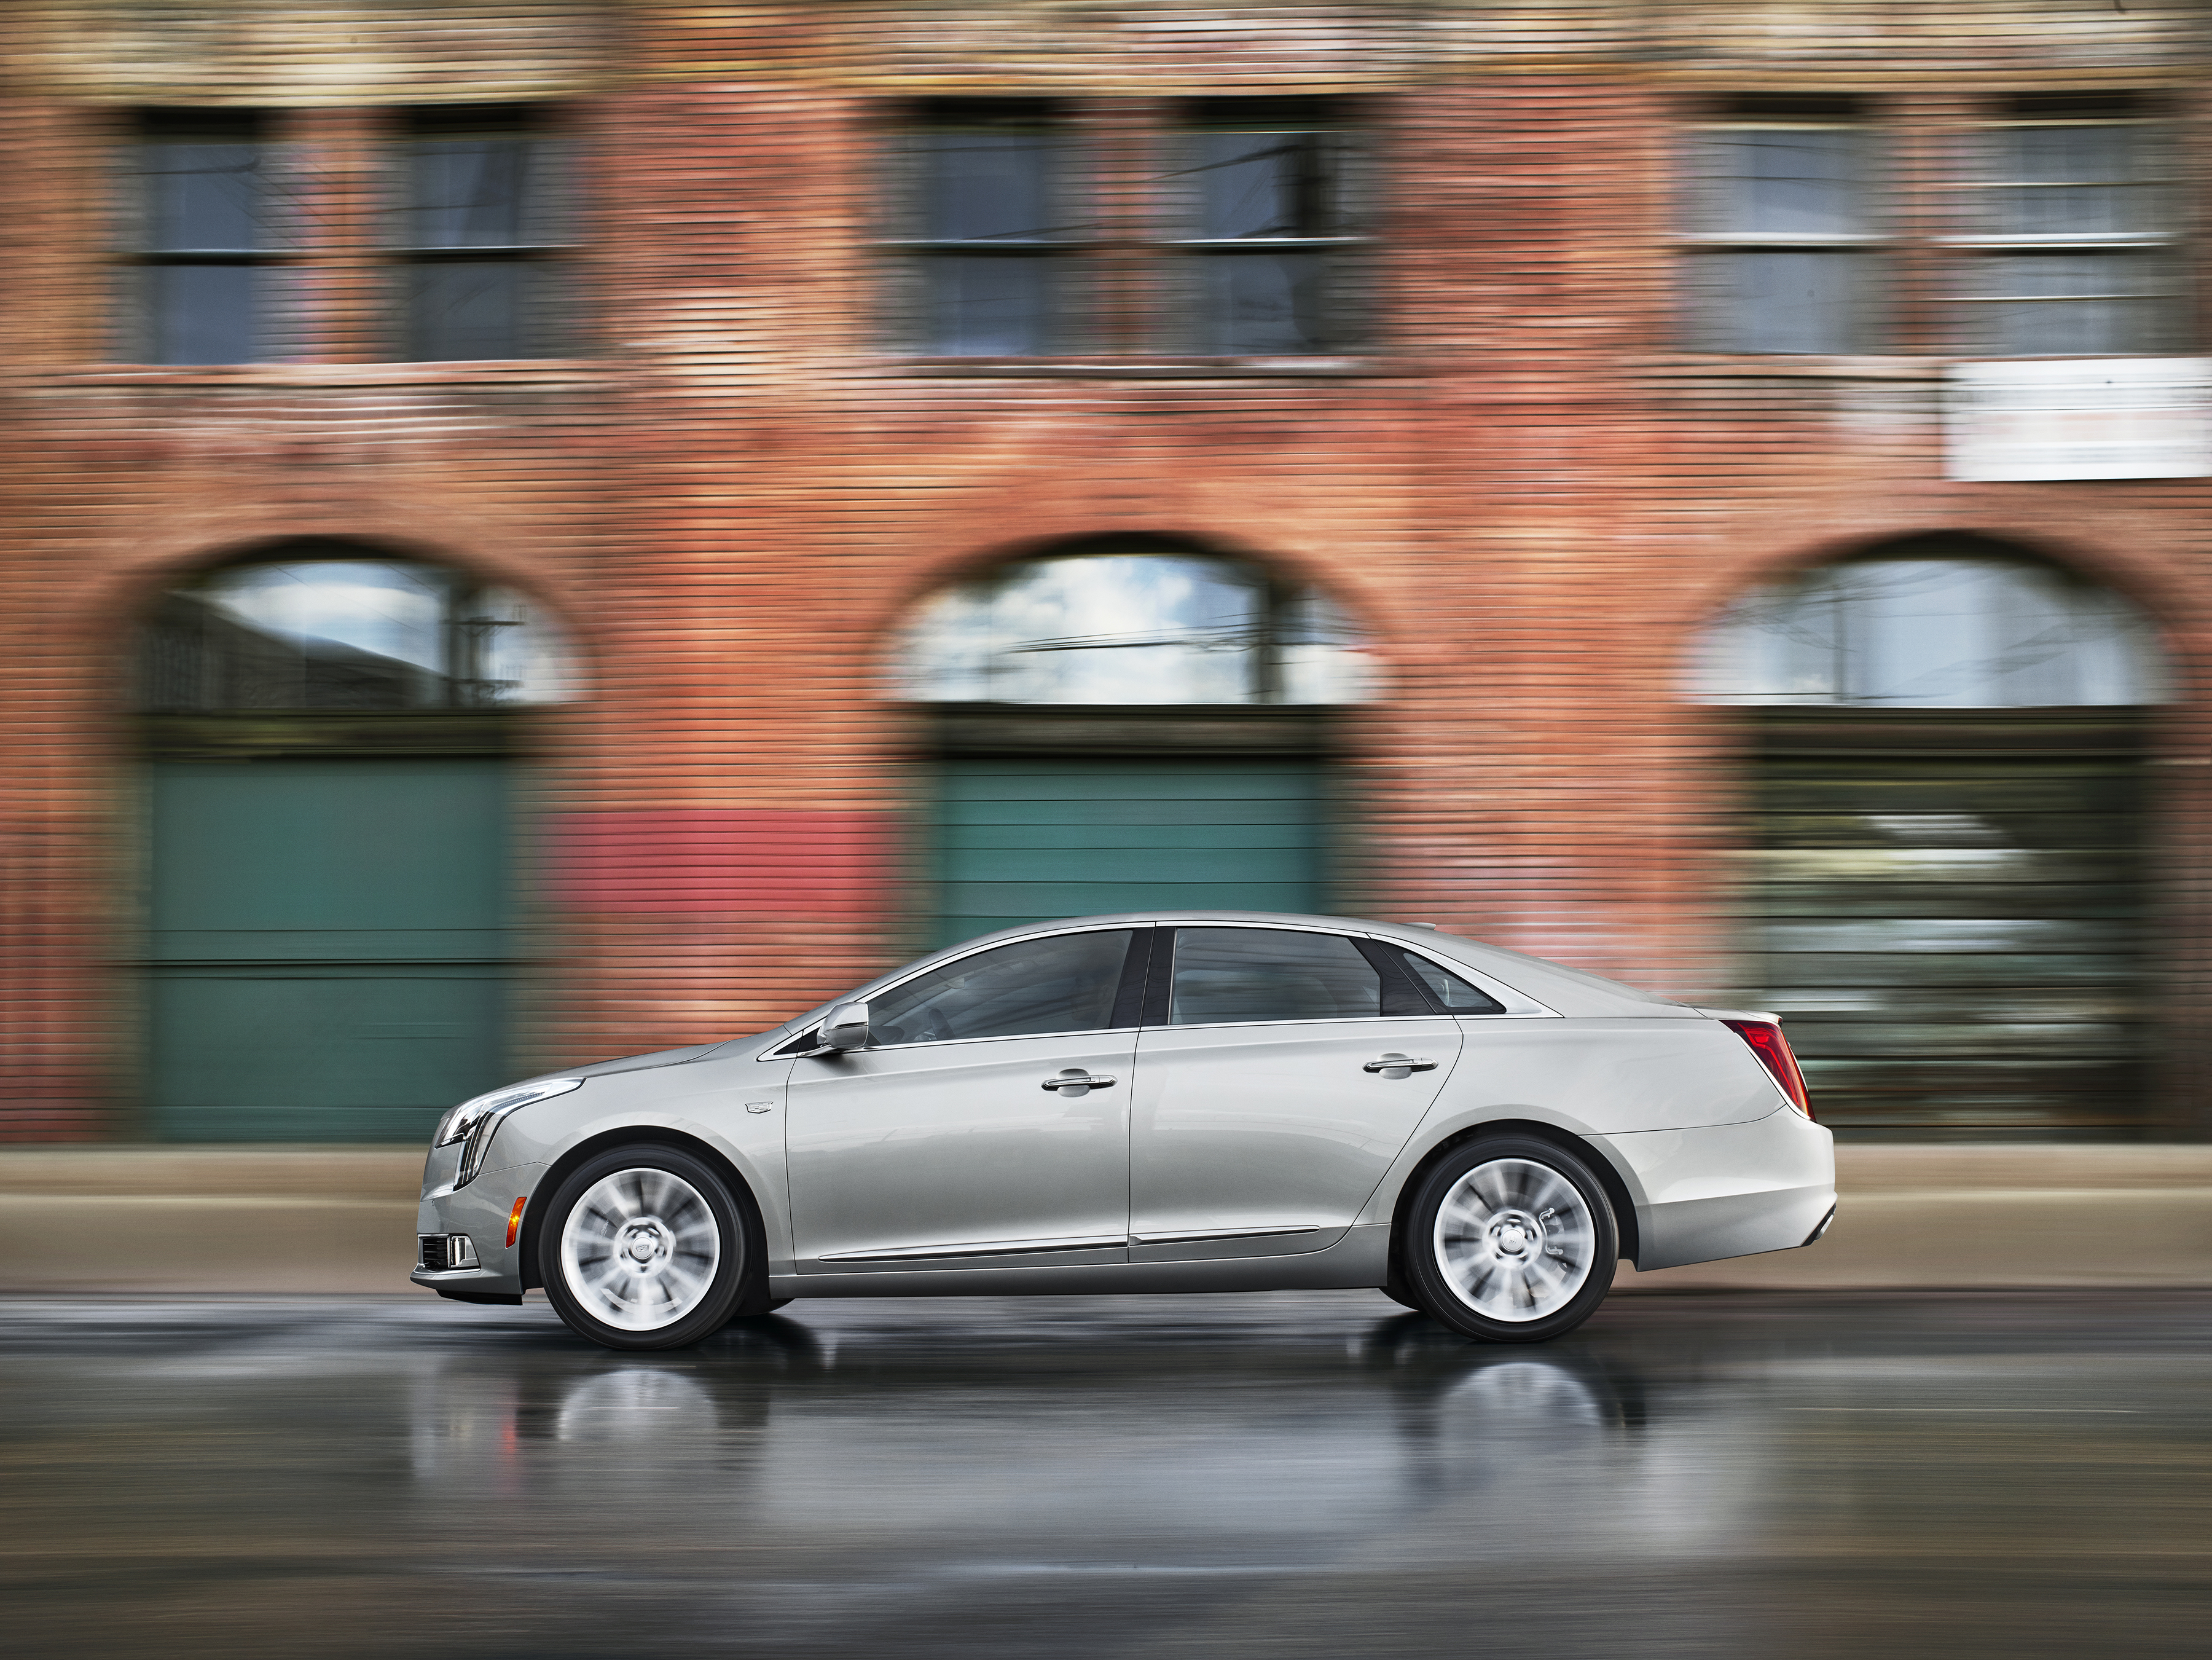 The 2018 Cadillac XTS Luxury Sedan Is Elevated With New Generation Of Design And Technology